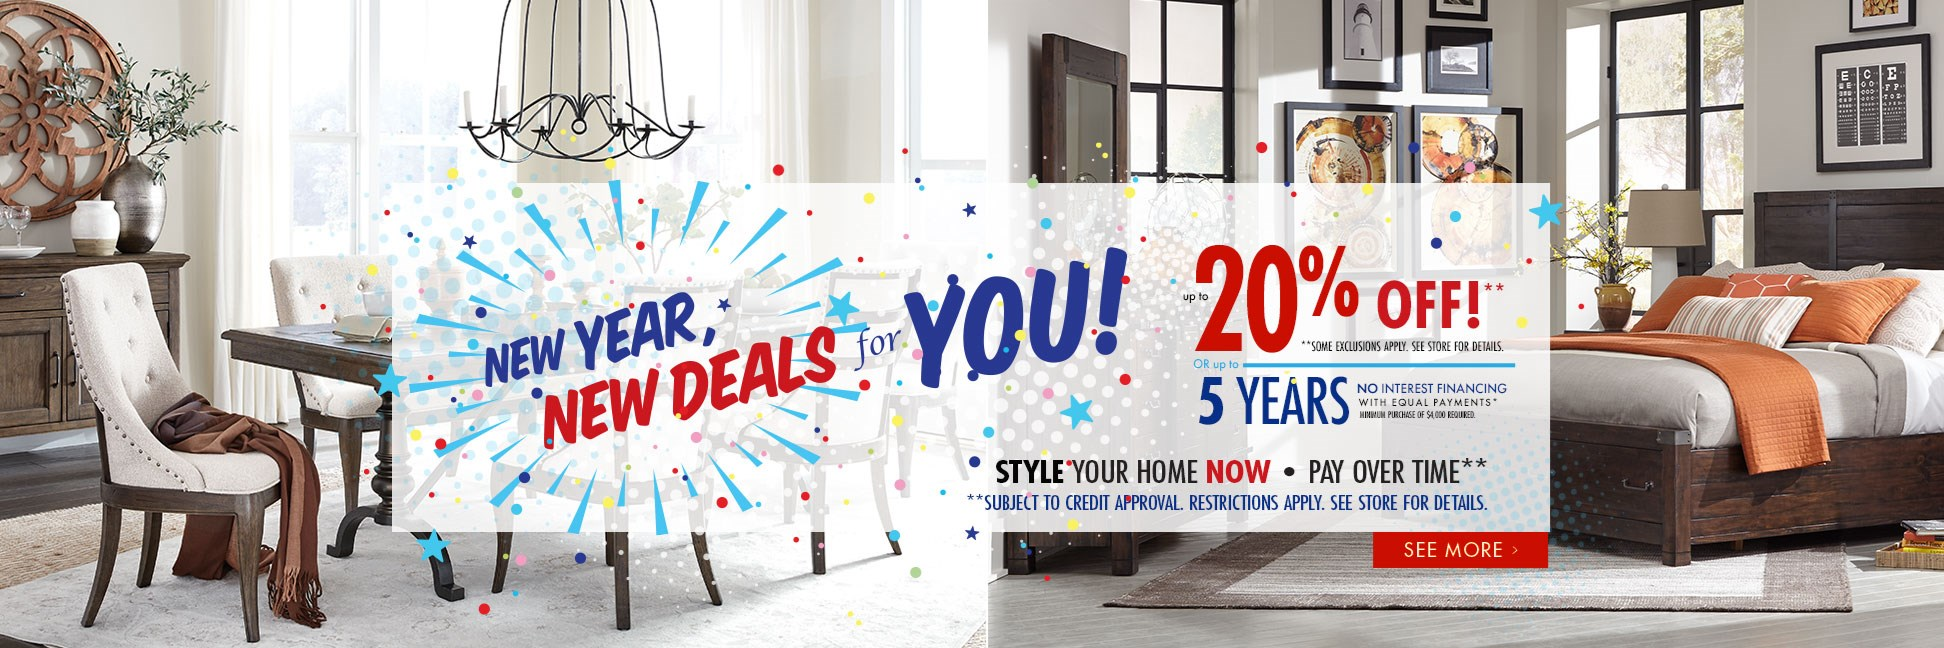 New Year New Deals For You!